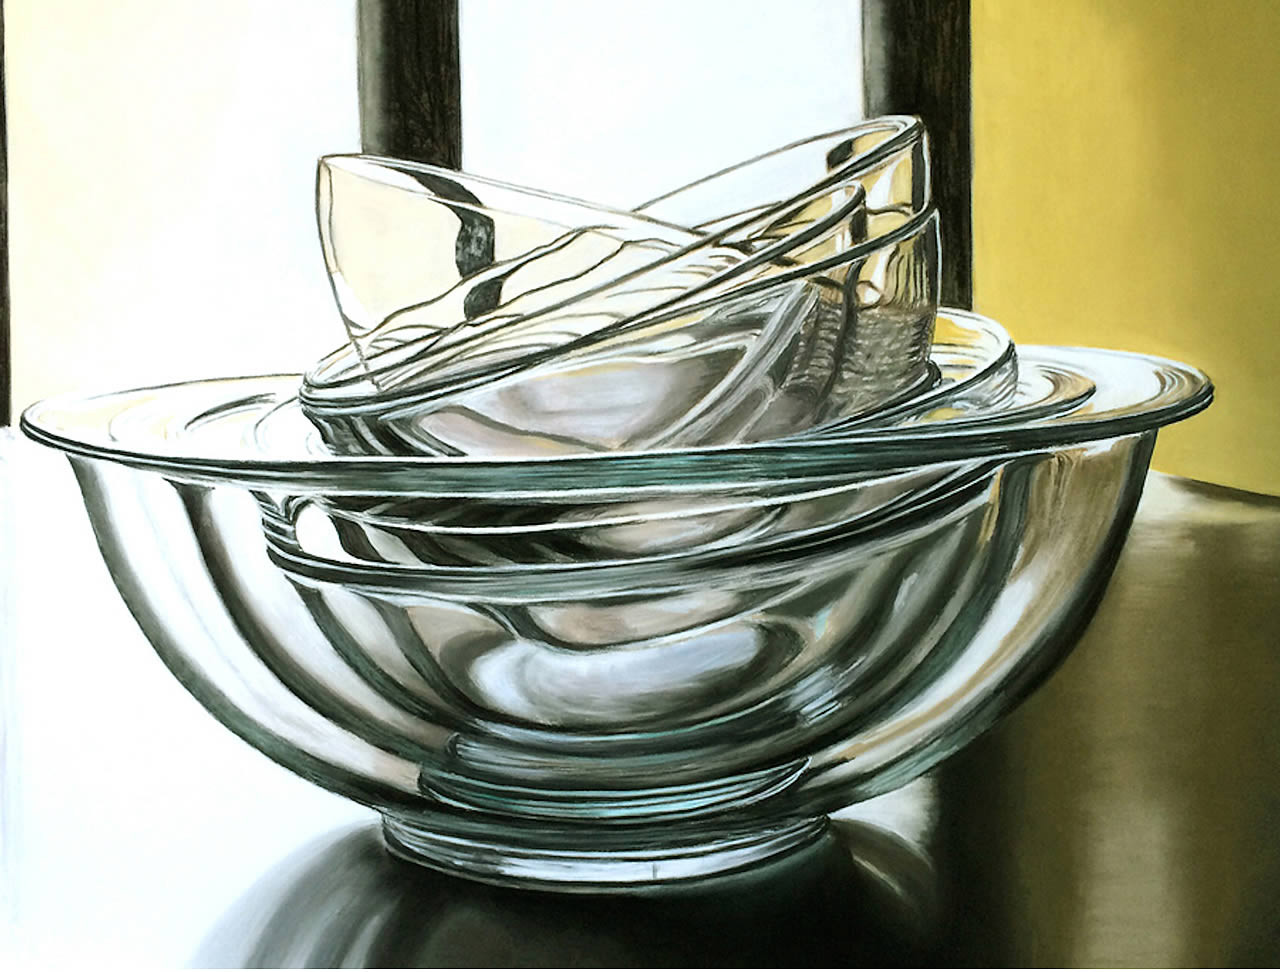 8 or 9 Glass Bowls